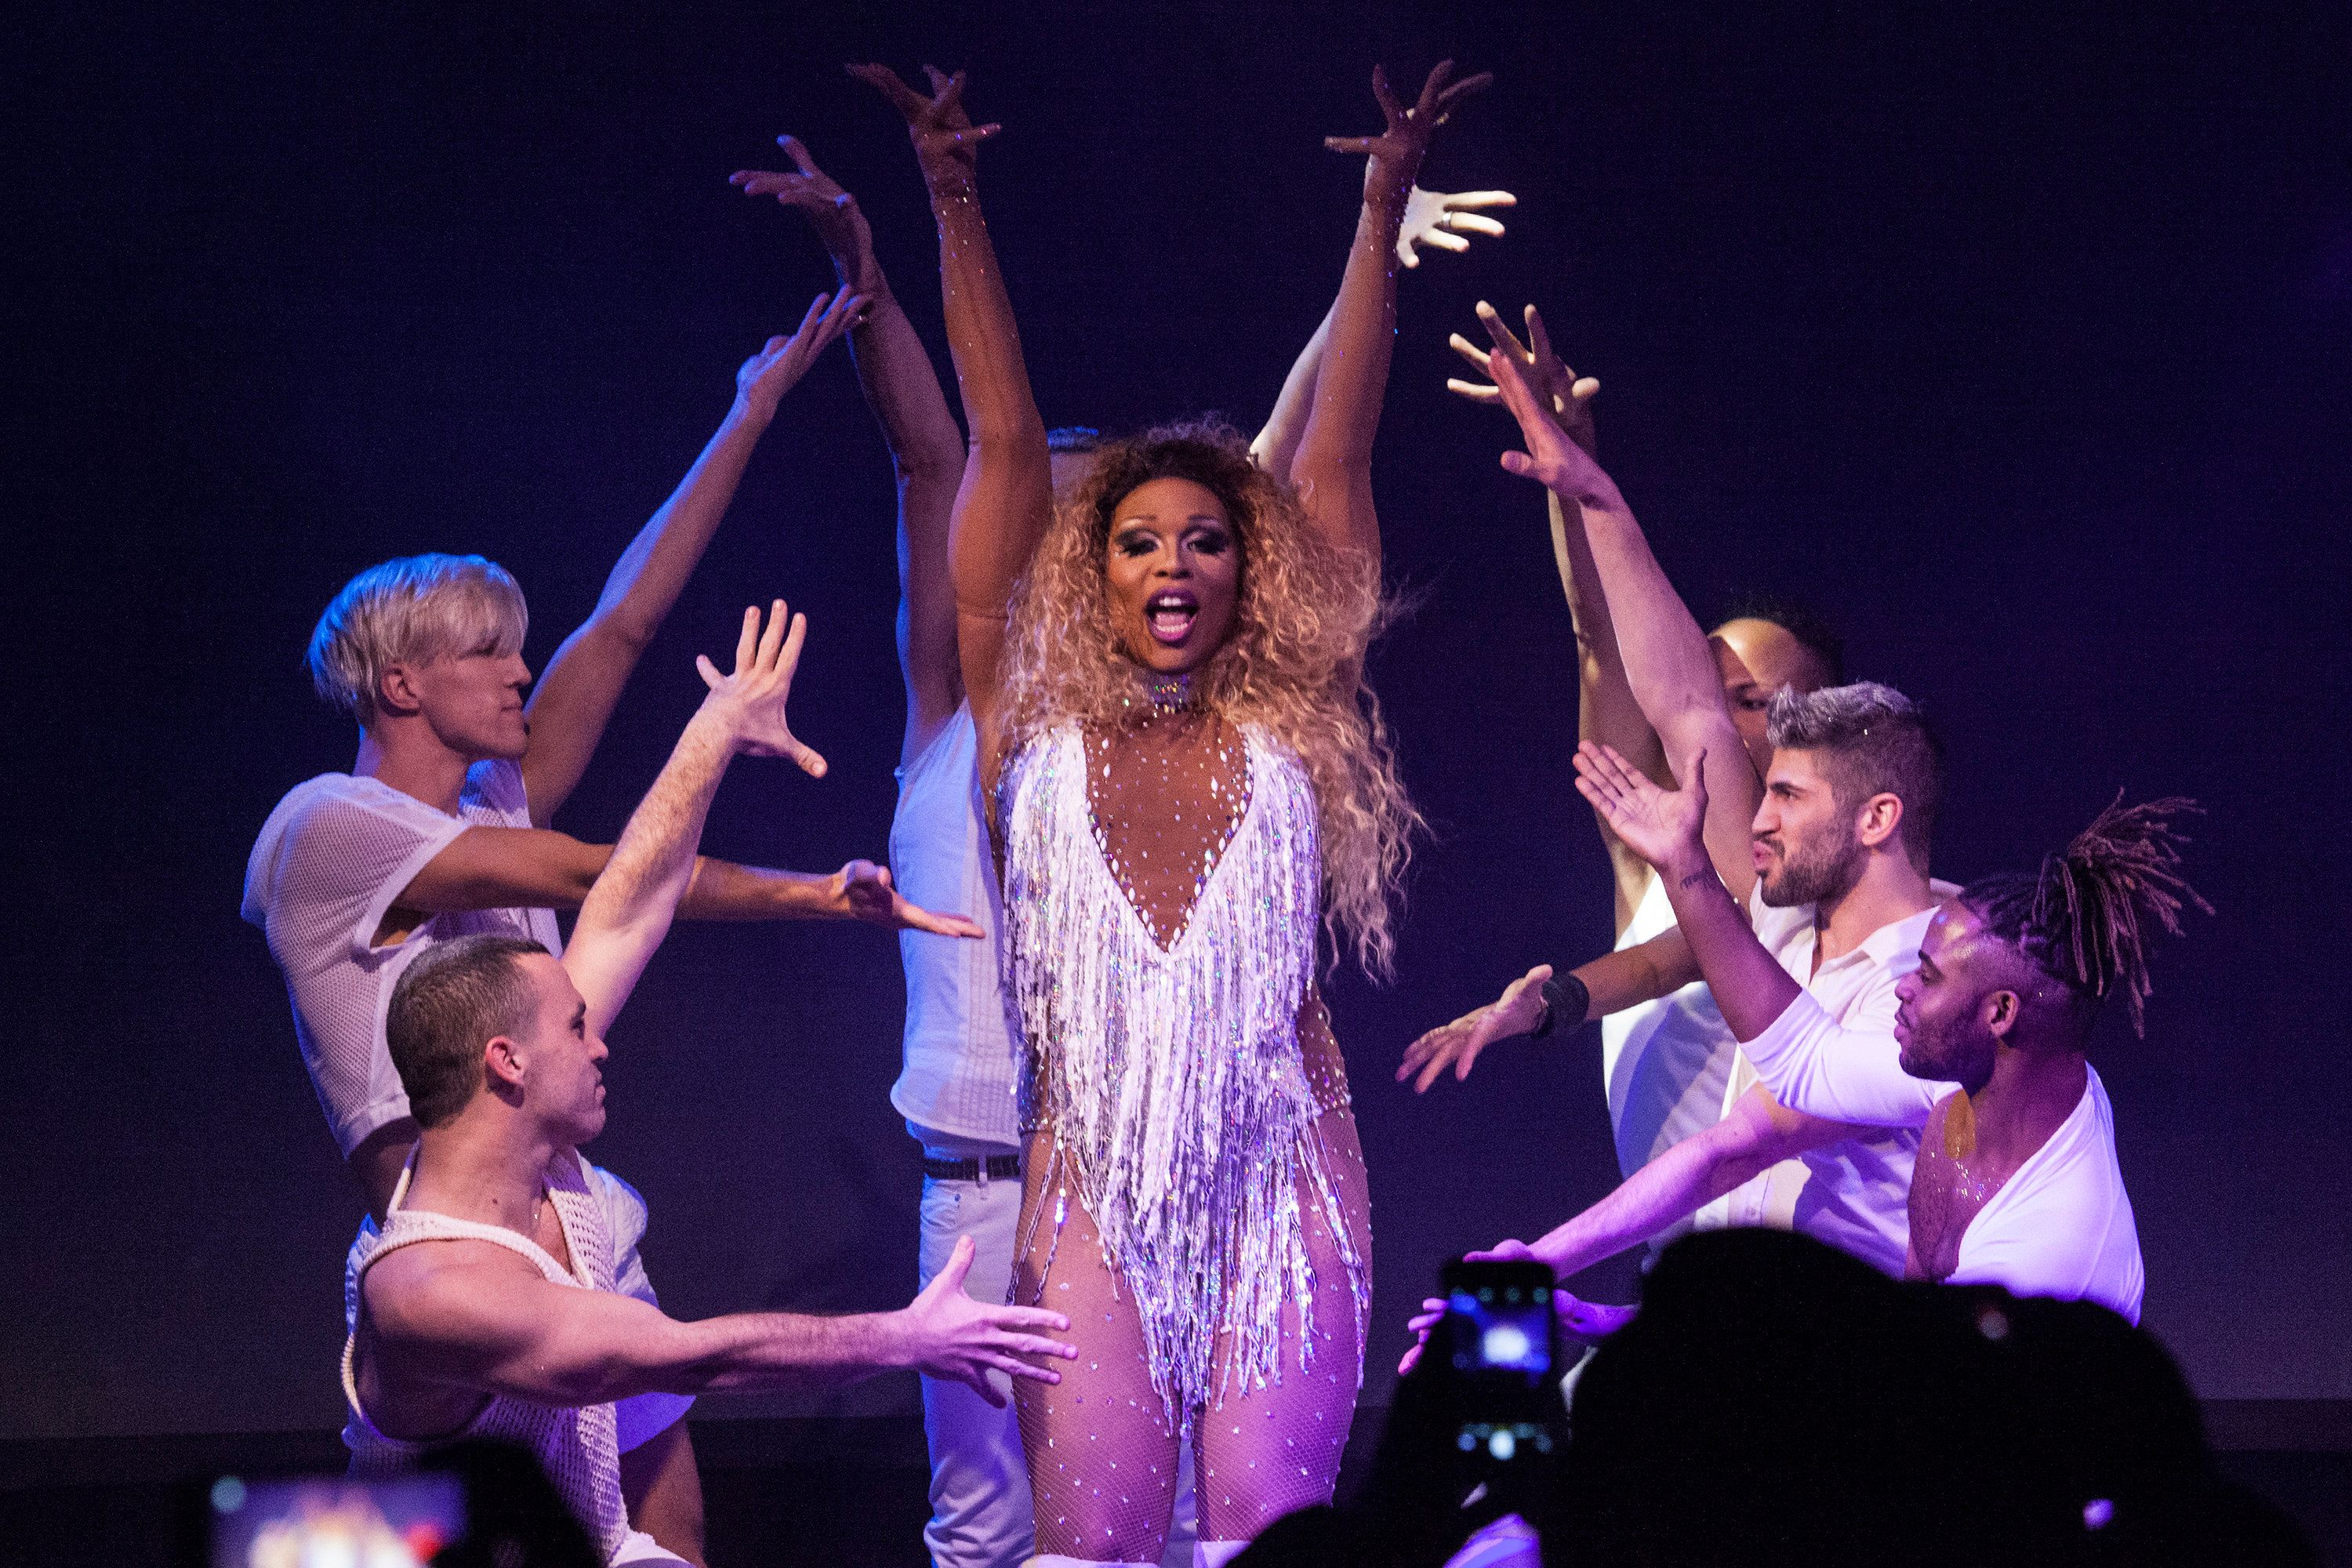 NEW YORK, NY - MARCH 07:  Peppermint performs onstage during 'RuPaul's Drag Race' Season 9 Premiere Party & Meet The Queens Event at PlayStation Theater on March 7, 2017 in New York City.  (Photo by Santiago Felipe/Getty Images)